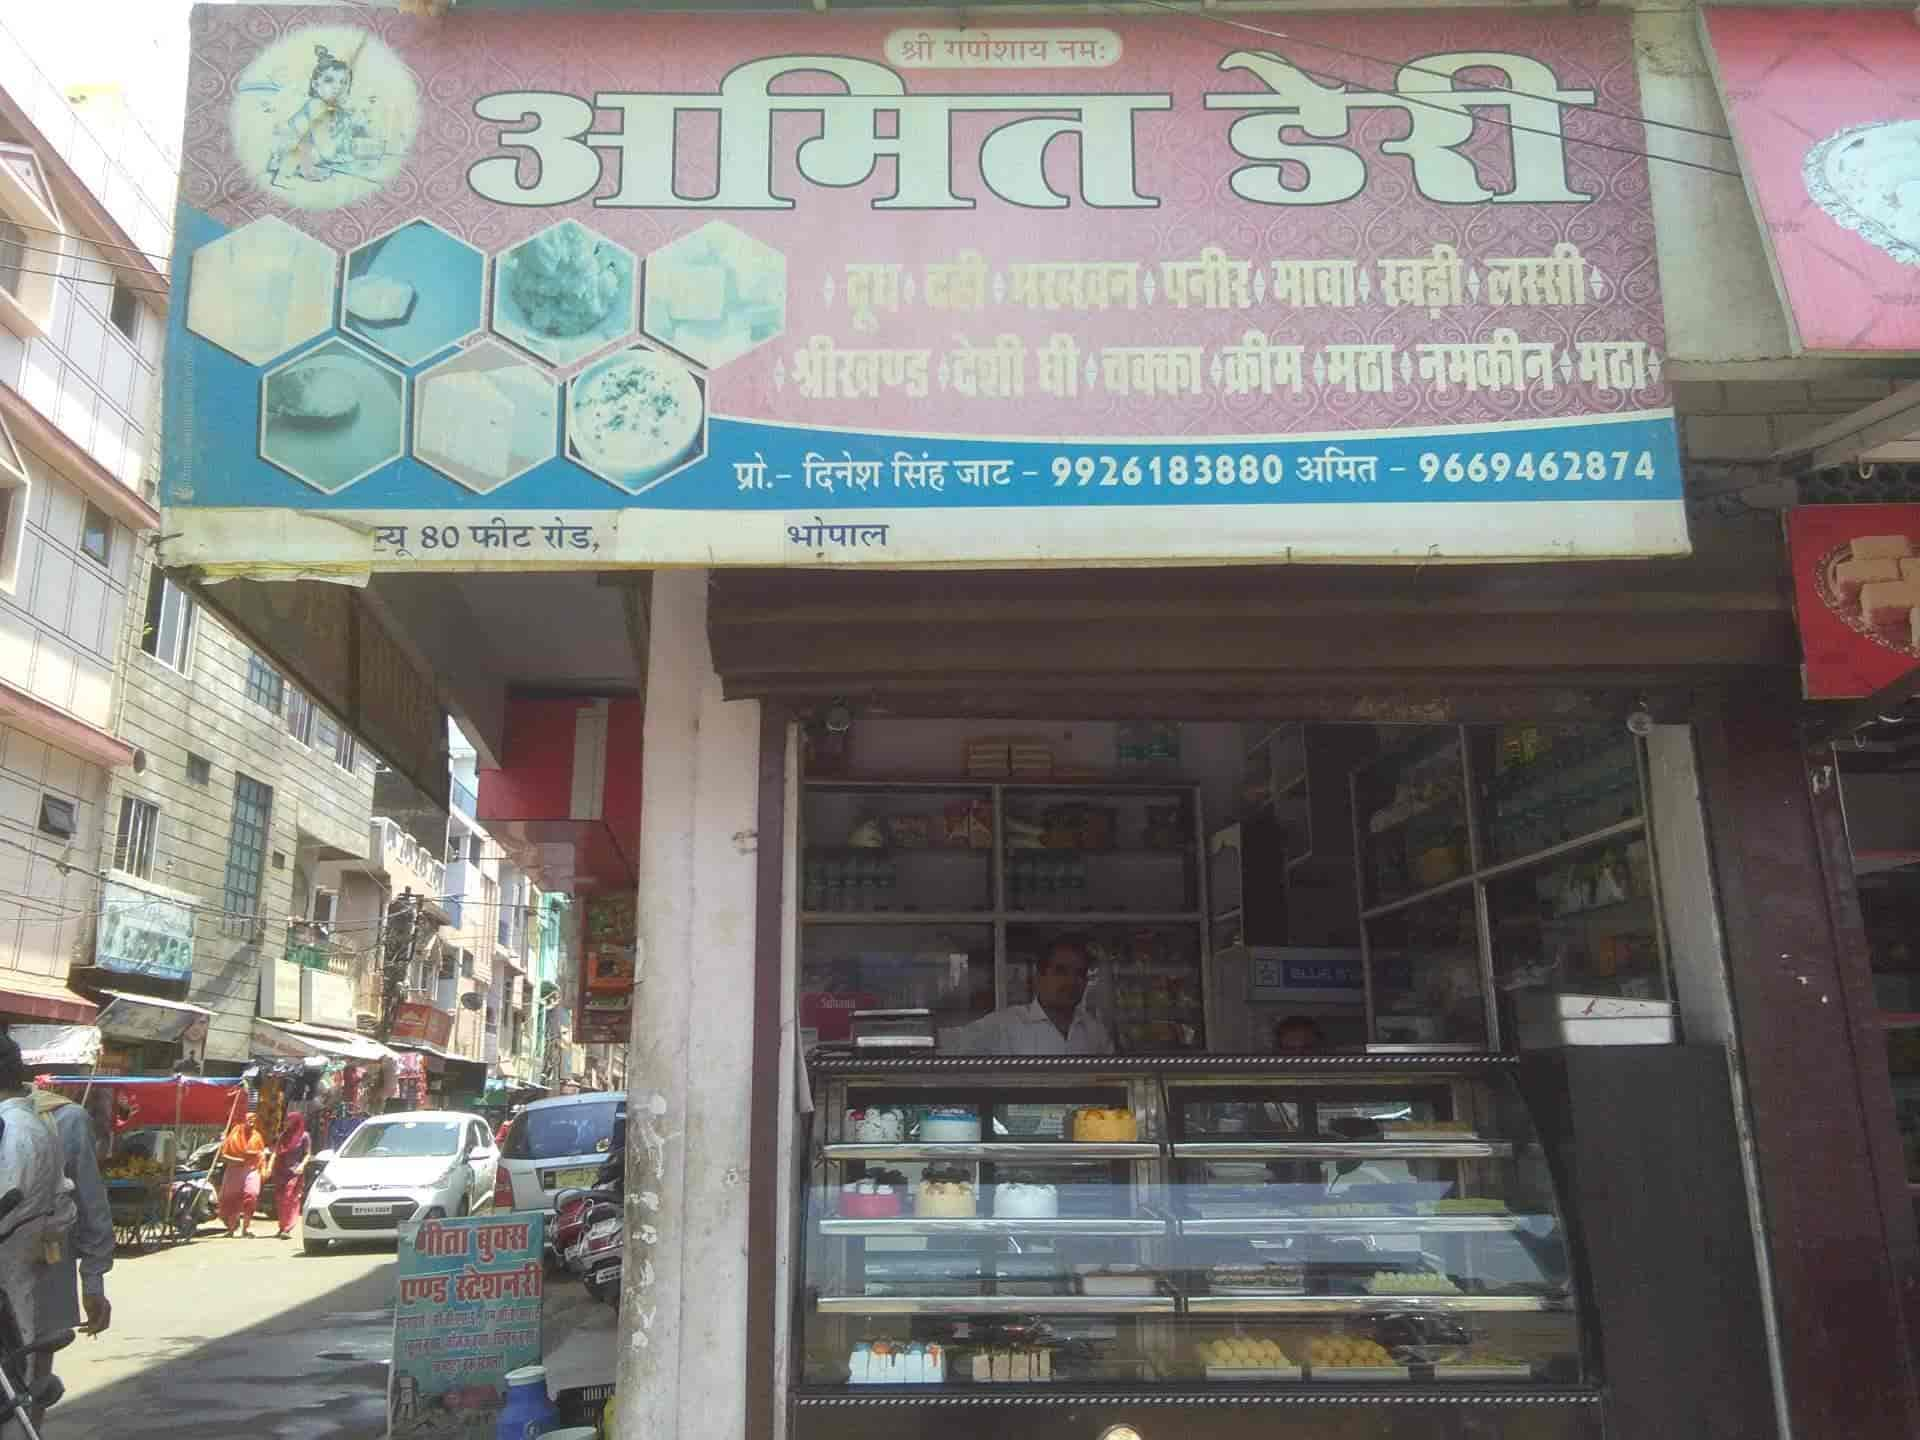 Amit Dairy Sweets Photos, Ashoka Garden, Bhopal- Pictures